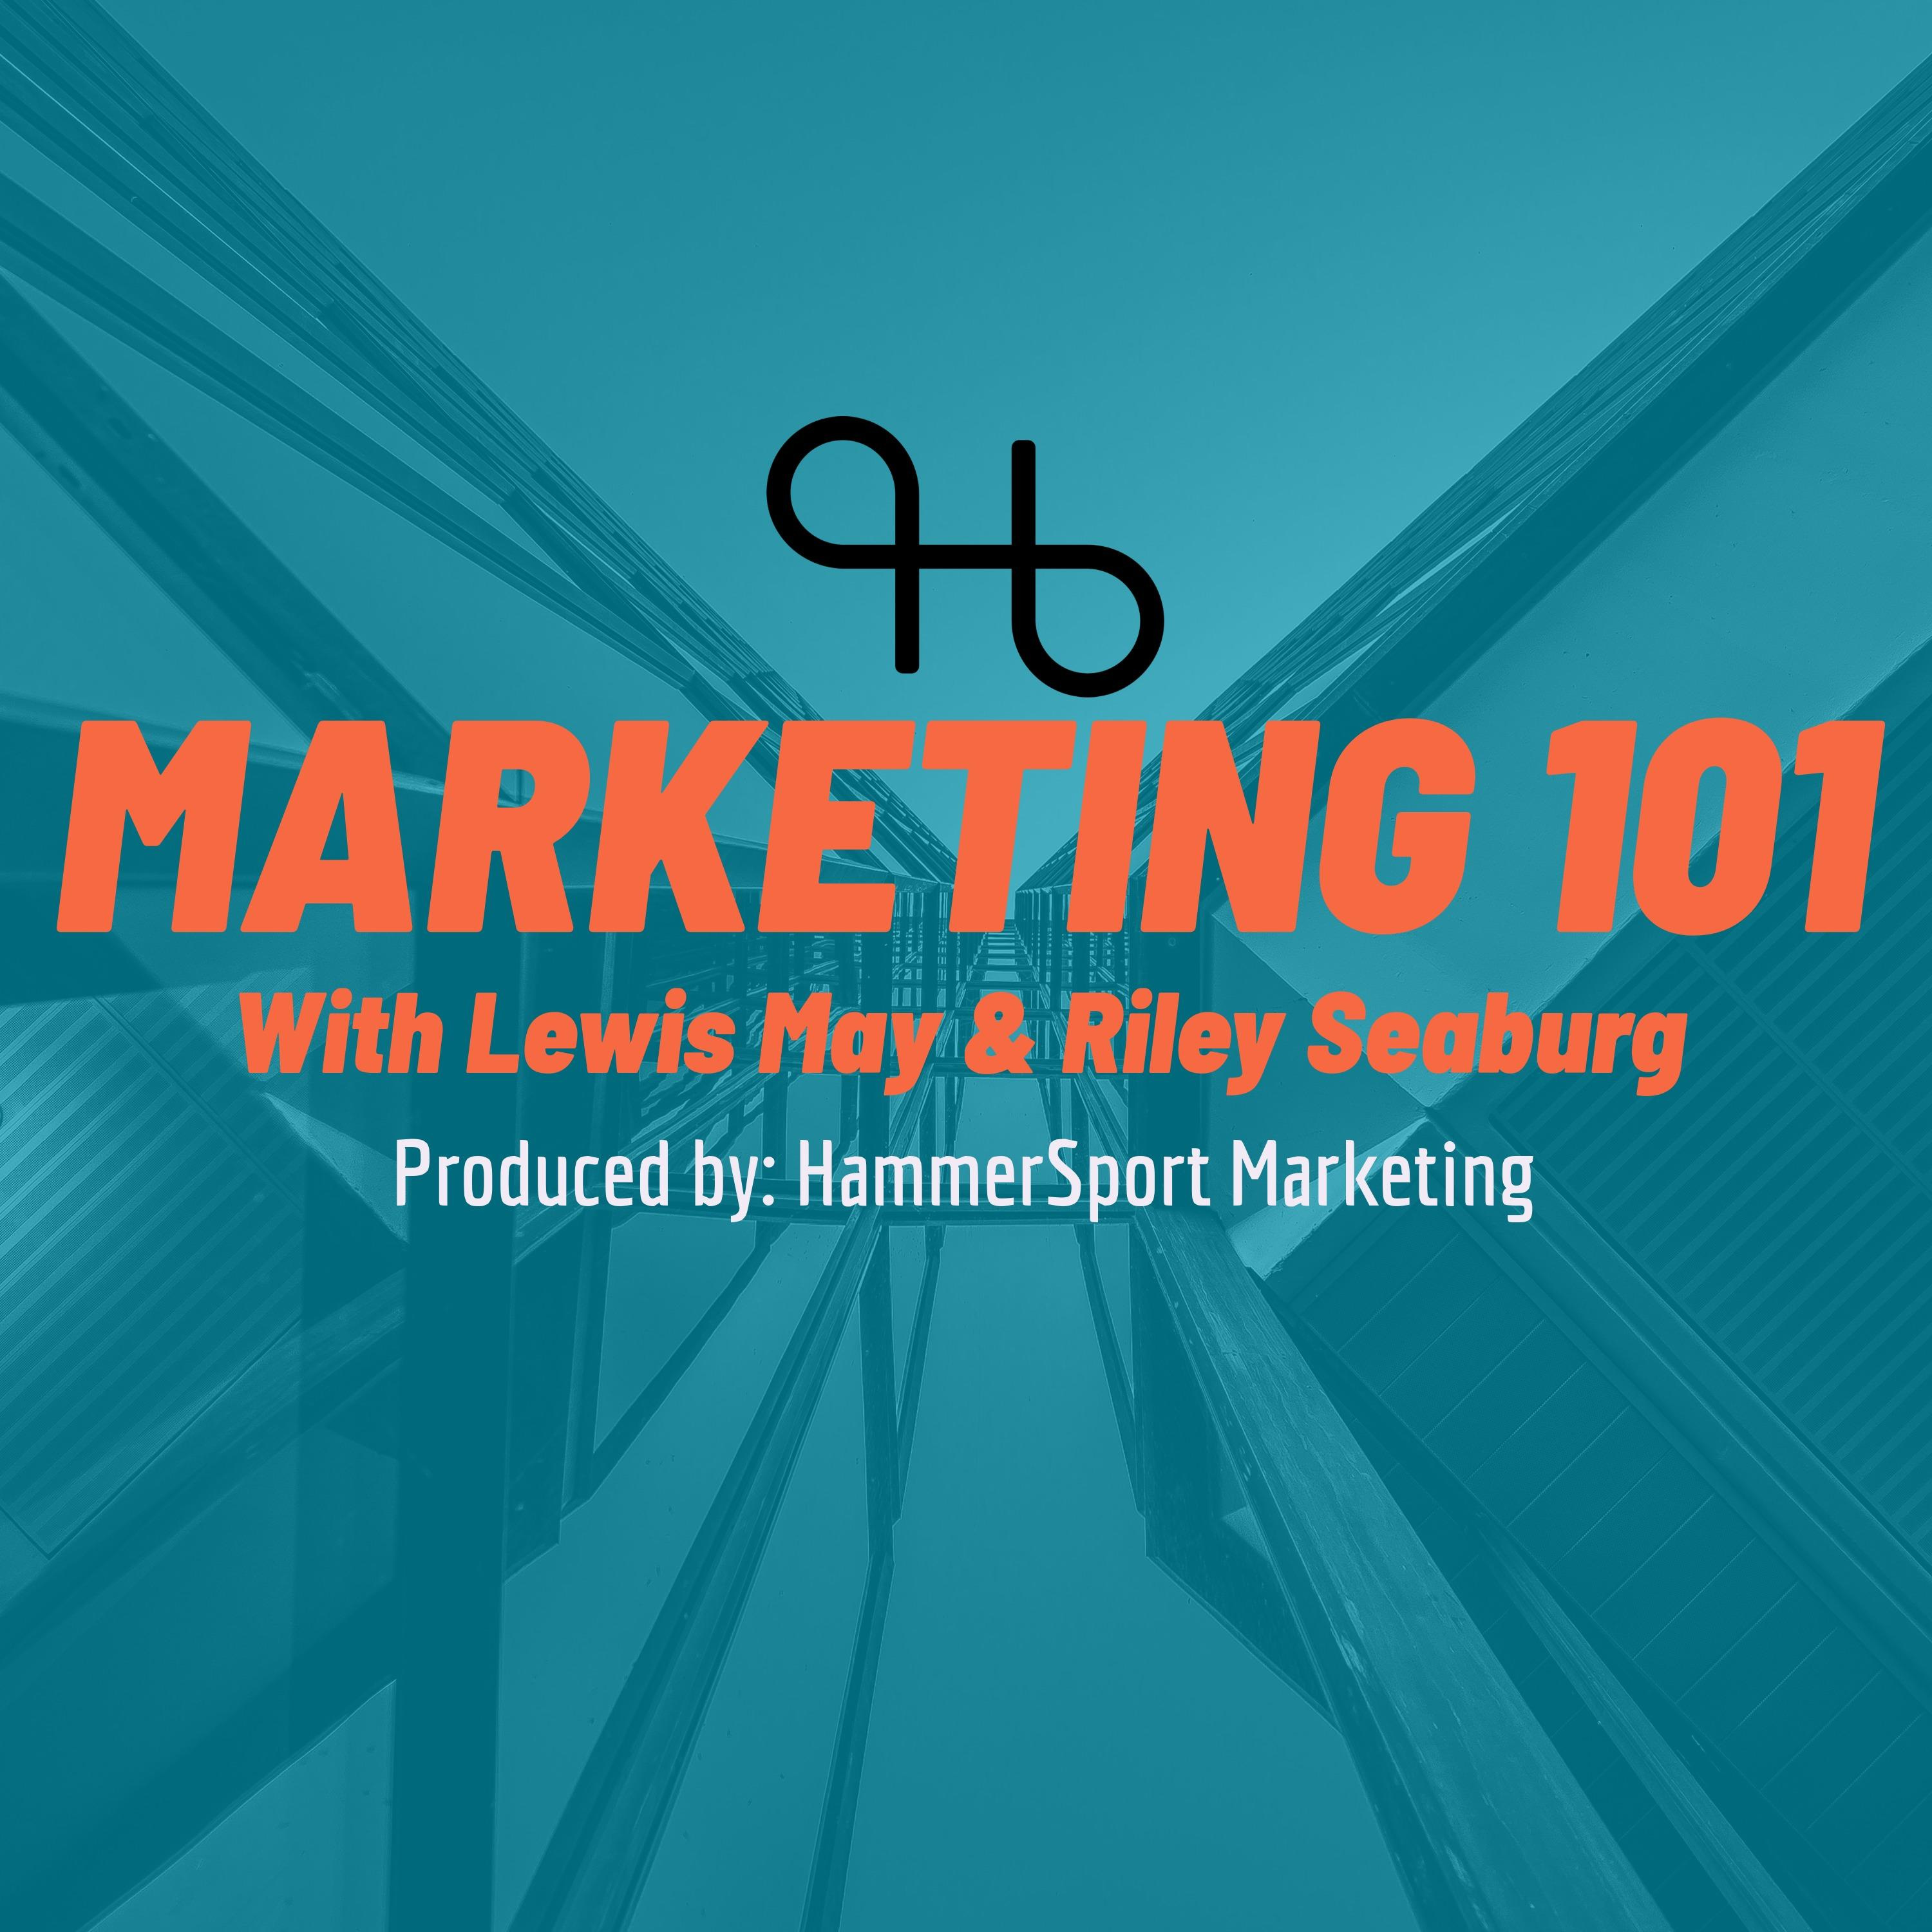 Marketing 101 with Lewis May from Hammersport Marketing